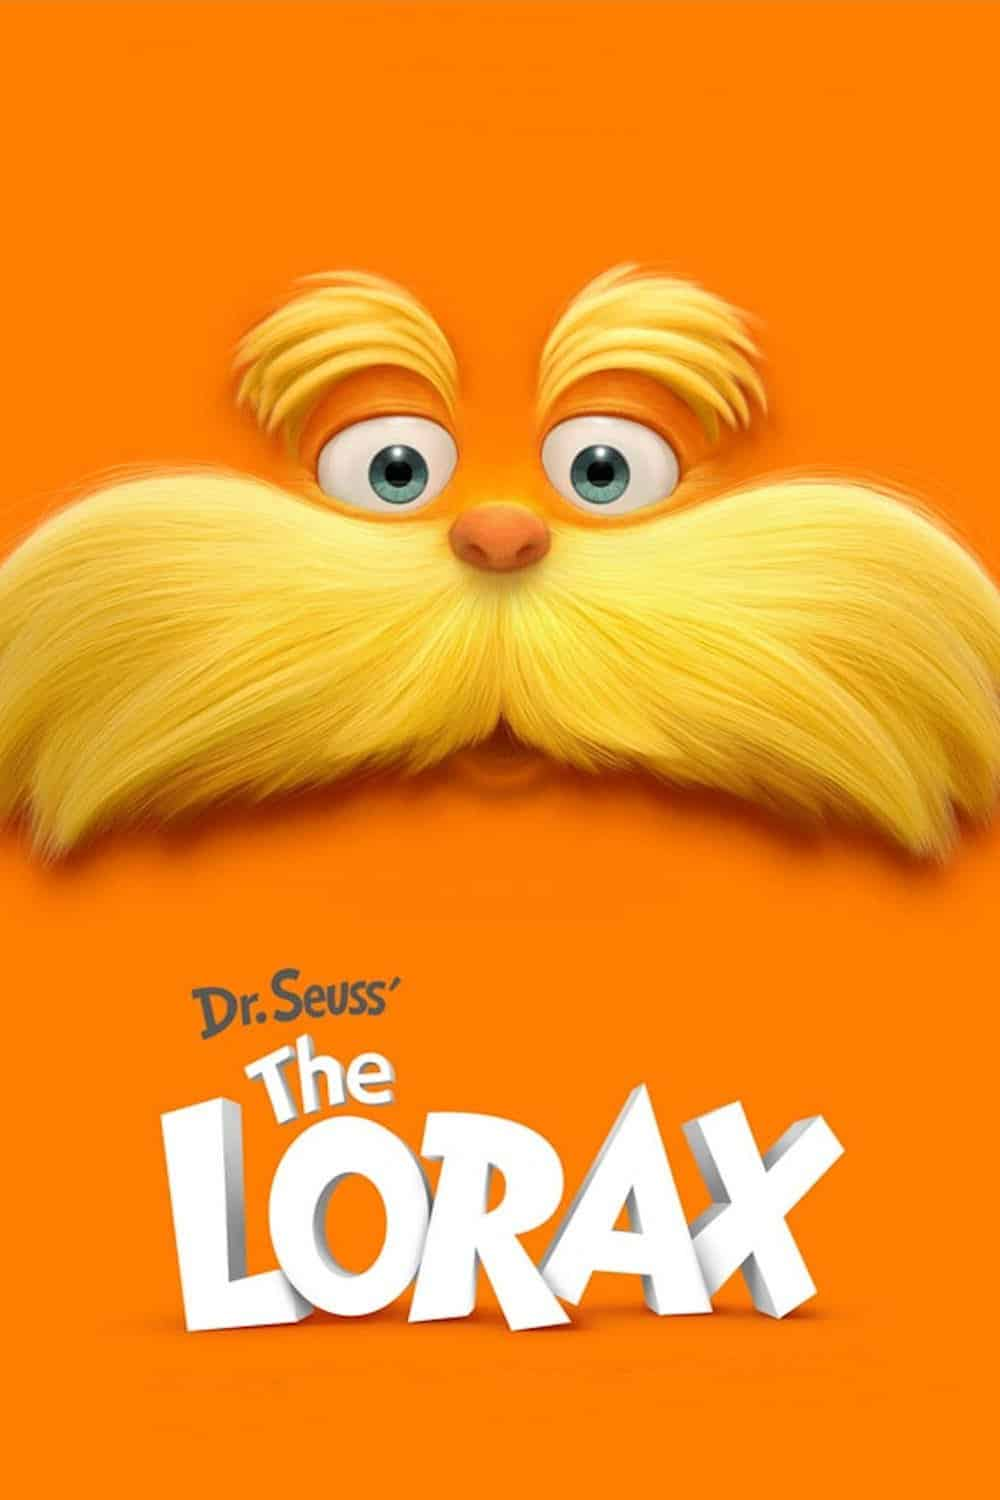 The Lorax, 2012